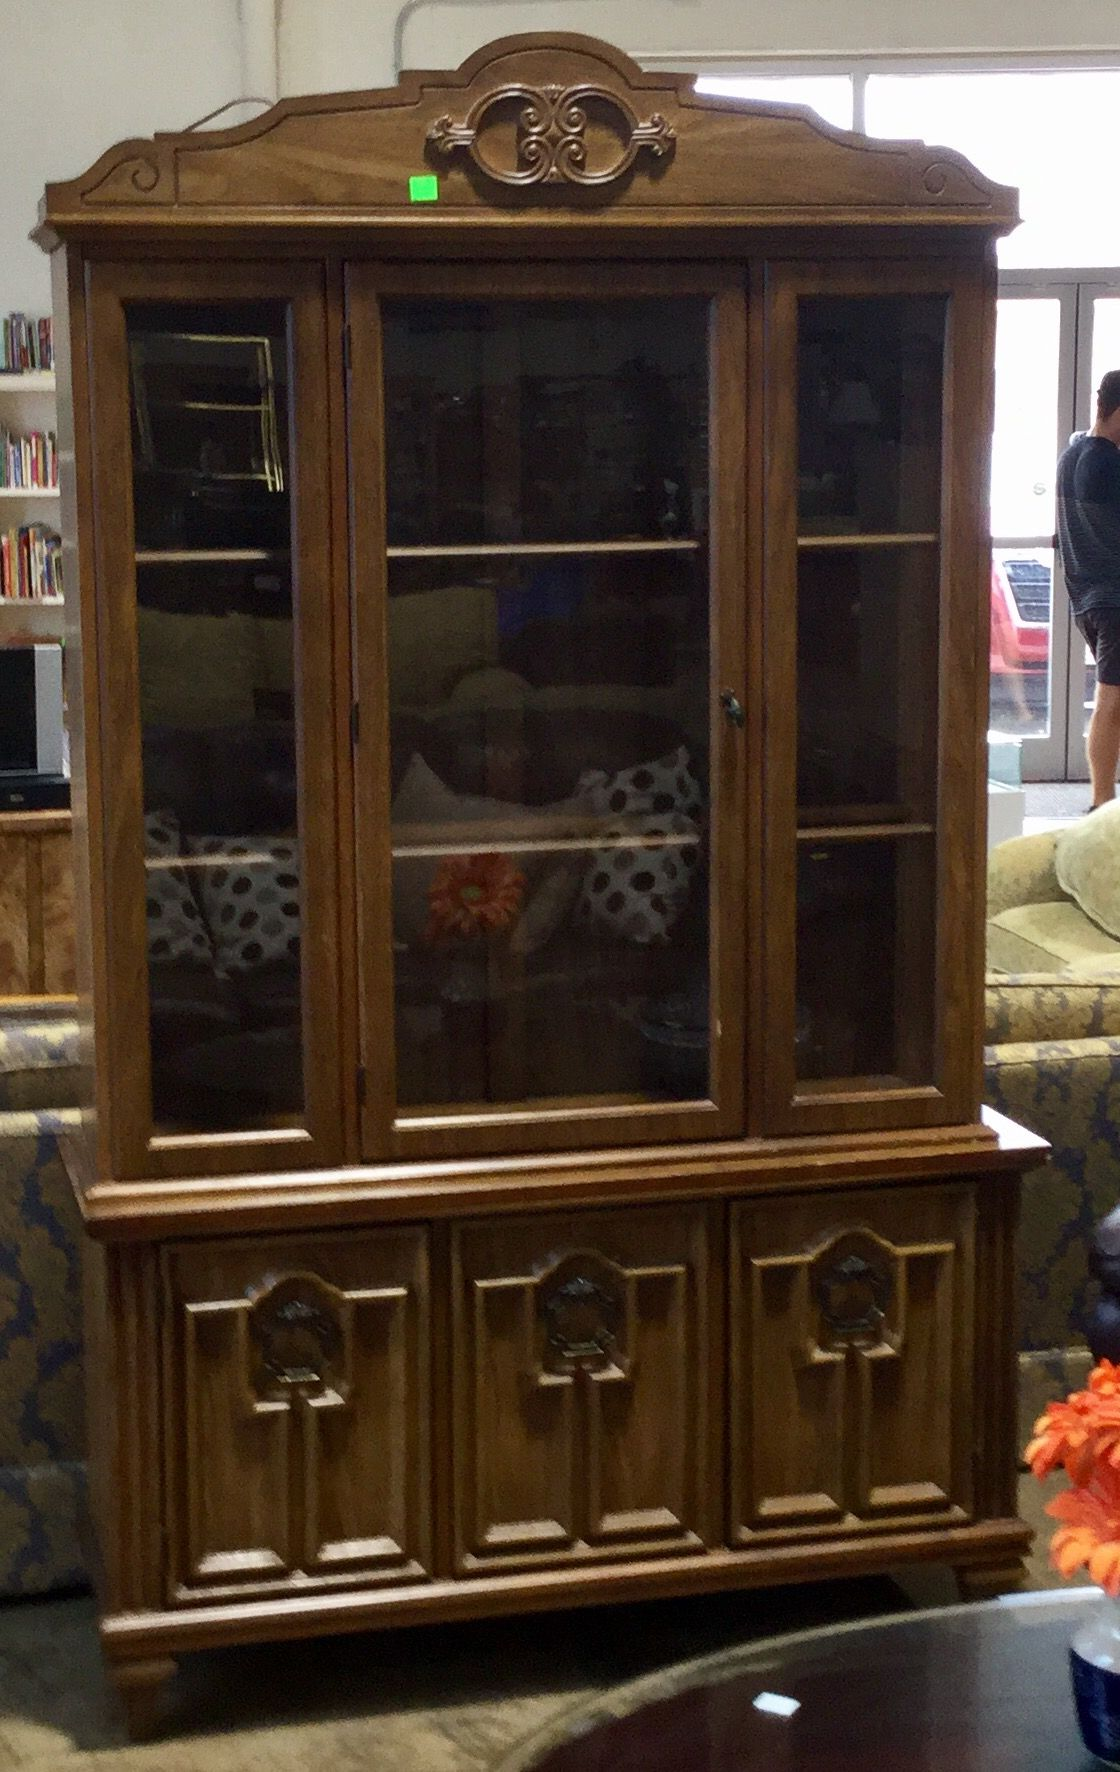 Armoire for sale for $150.00 at Habitat for Humanity ...